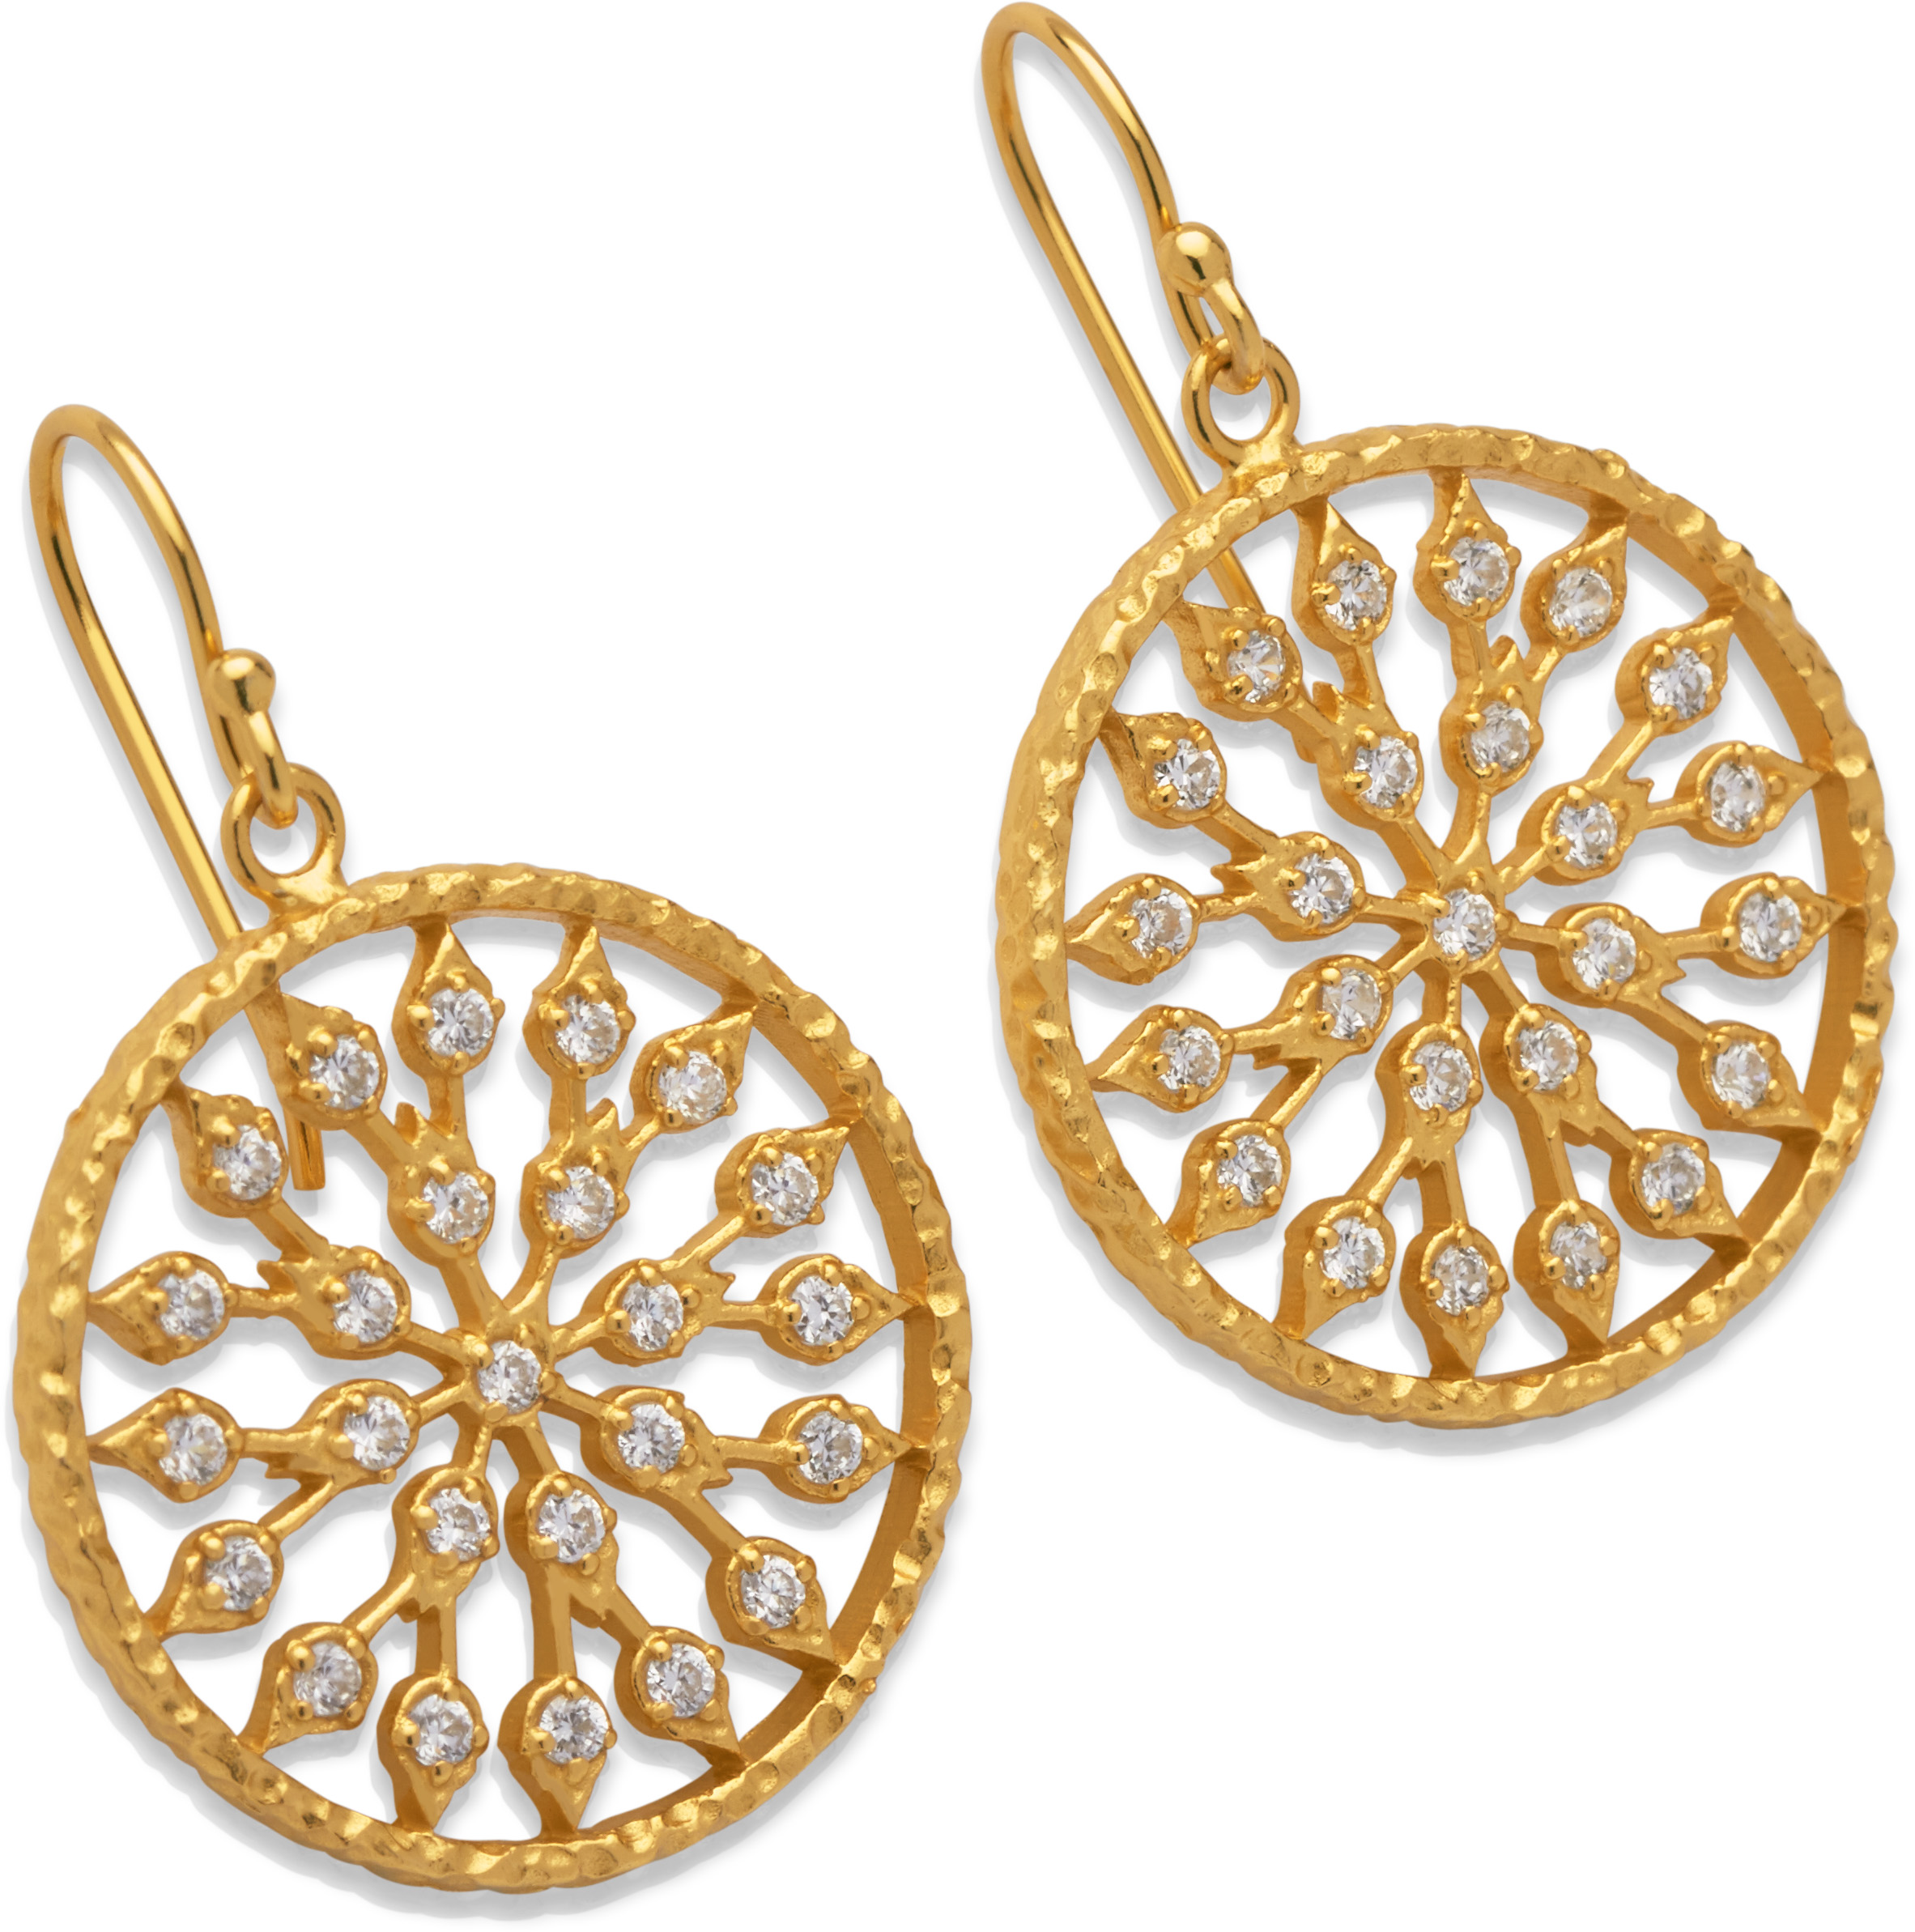 68834 - Yellow gold plated Disc earrings in Sterling Silver